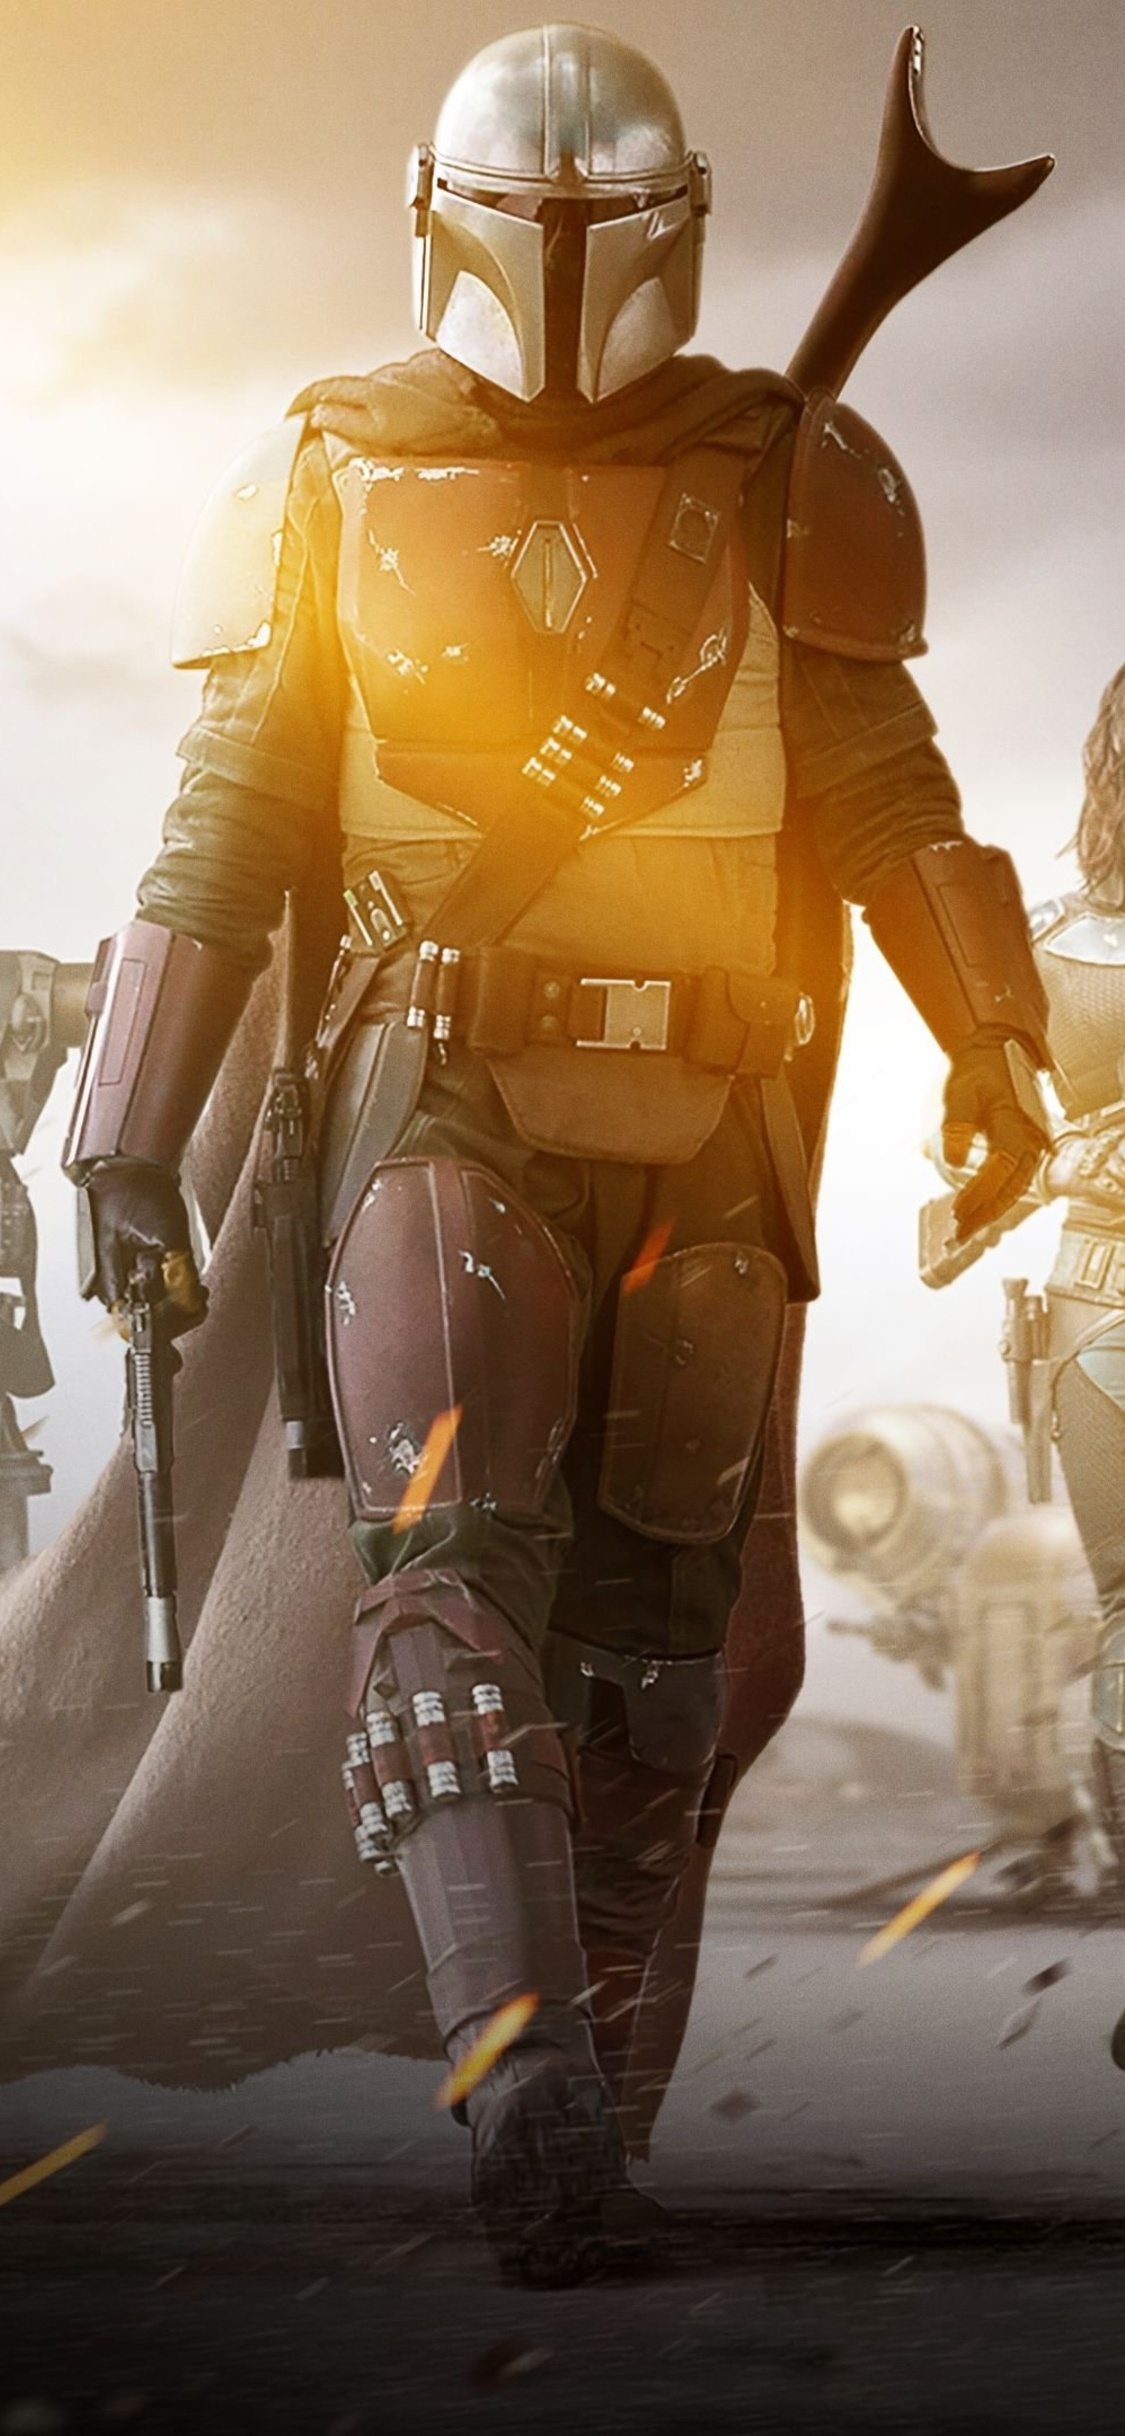 Star Wars Iphone Wallpaper Hd Star Wars The Mandalorian 1125x2436 Download Hd Wallpaper Wallpapertip